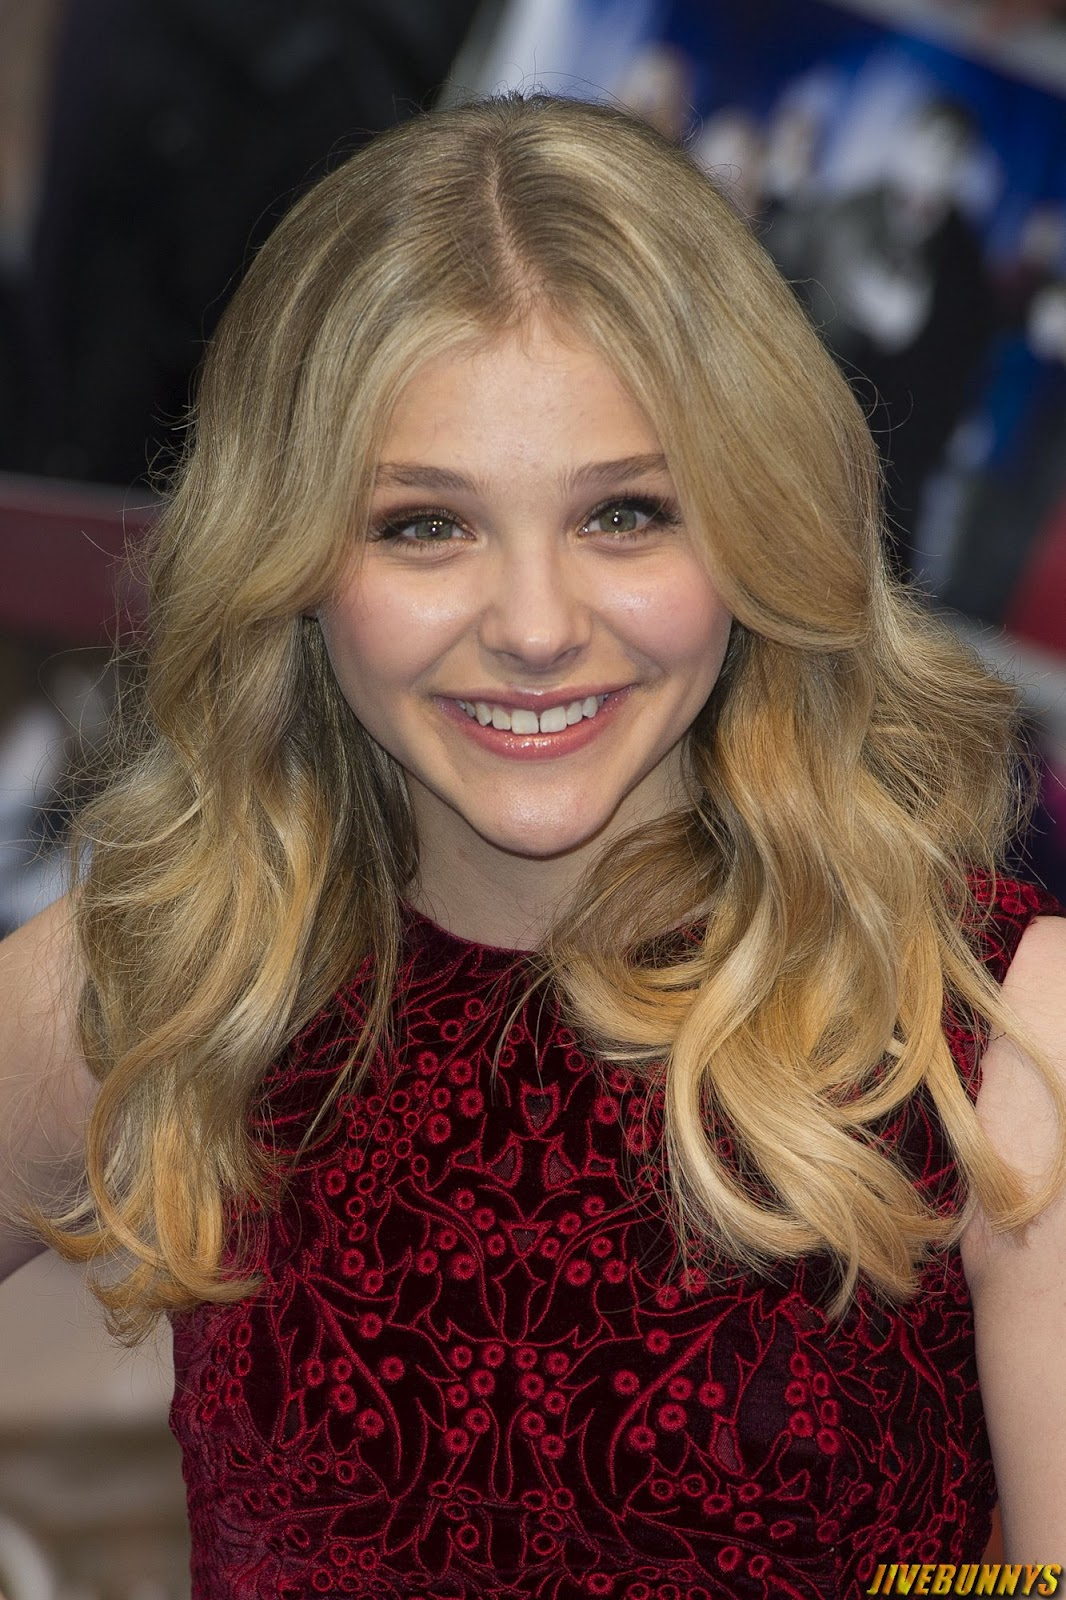 Chloe grace moretz sexy photos and picture gallery 5